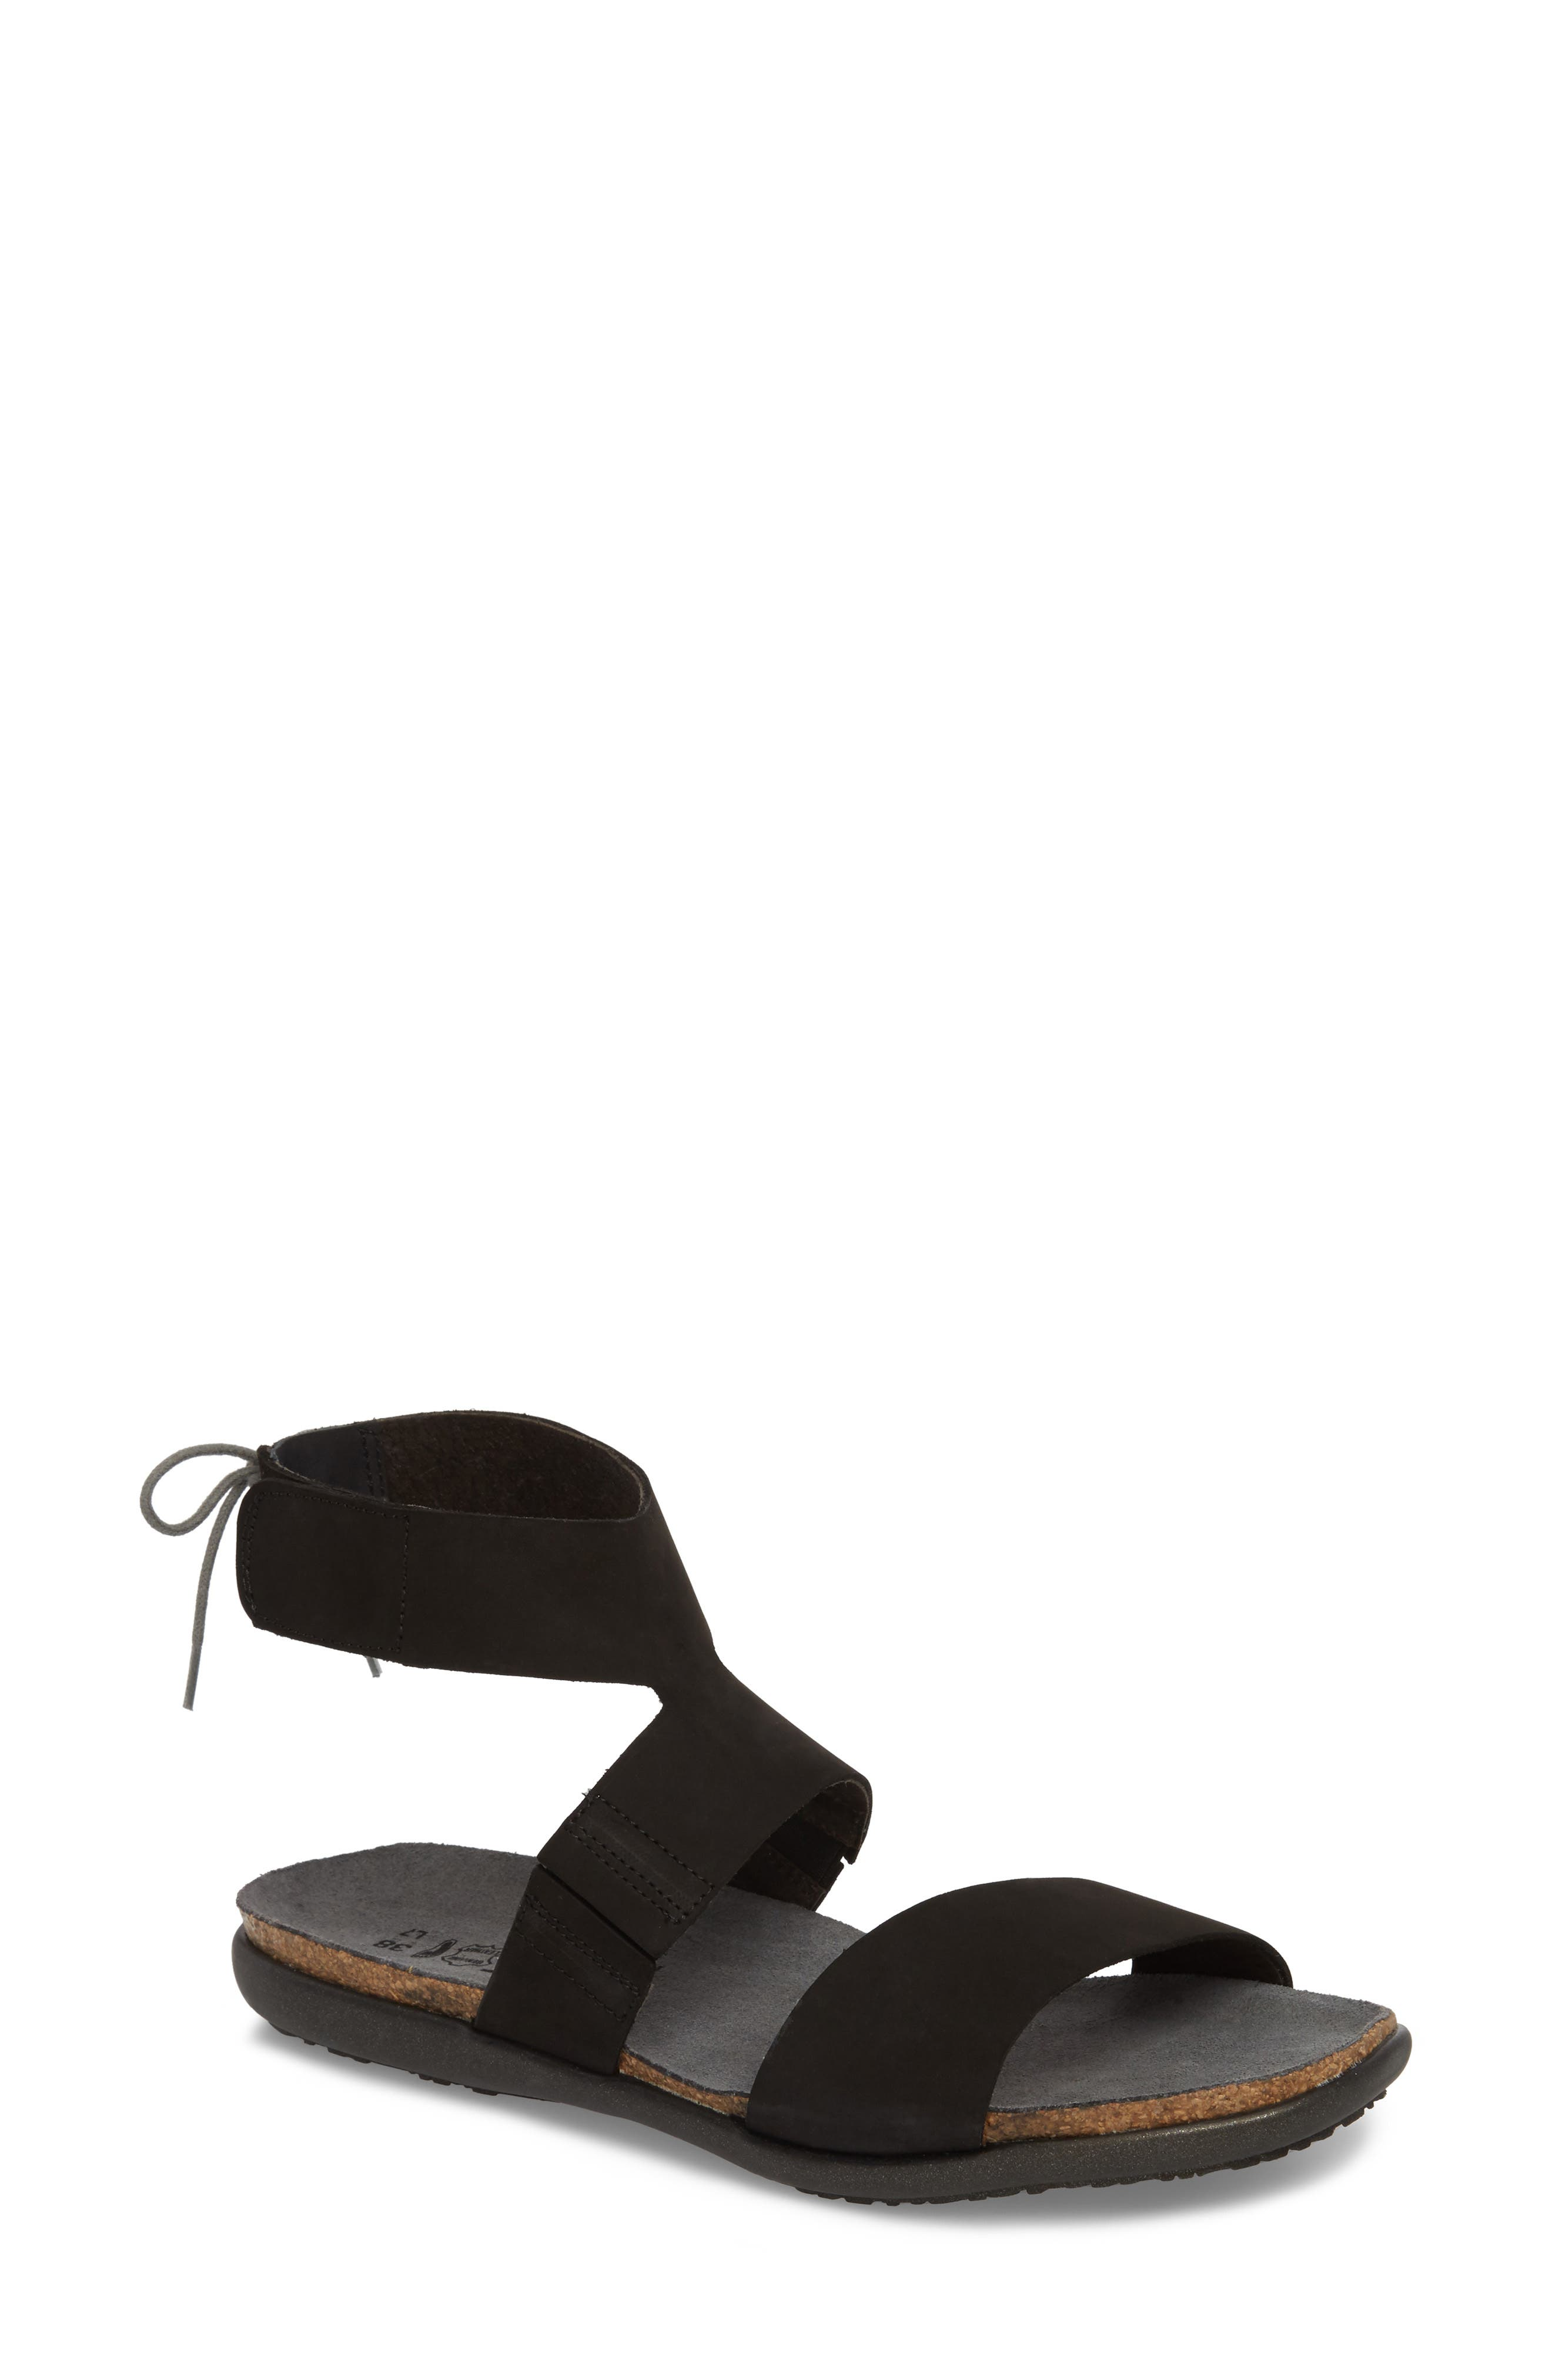 Larissa Ankle Strap Sandal,                             Main thumbnail 1, color,